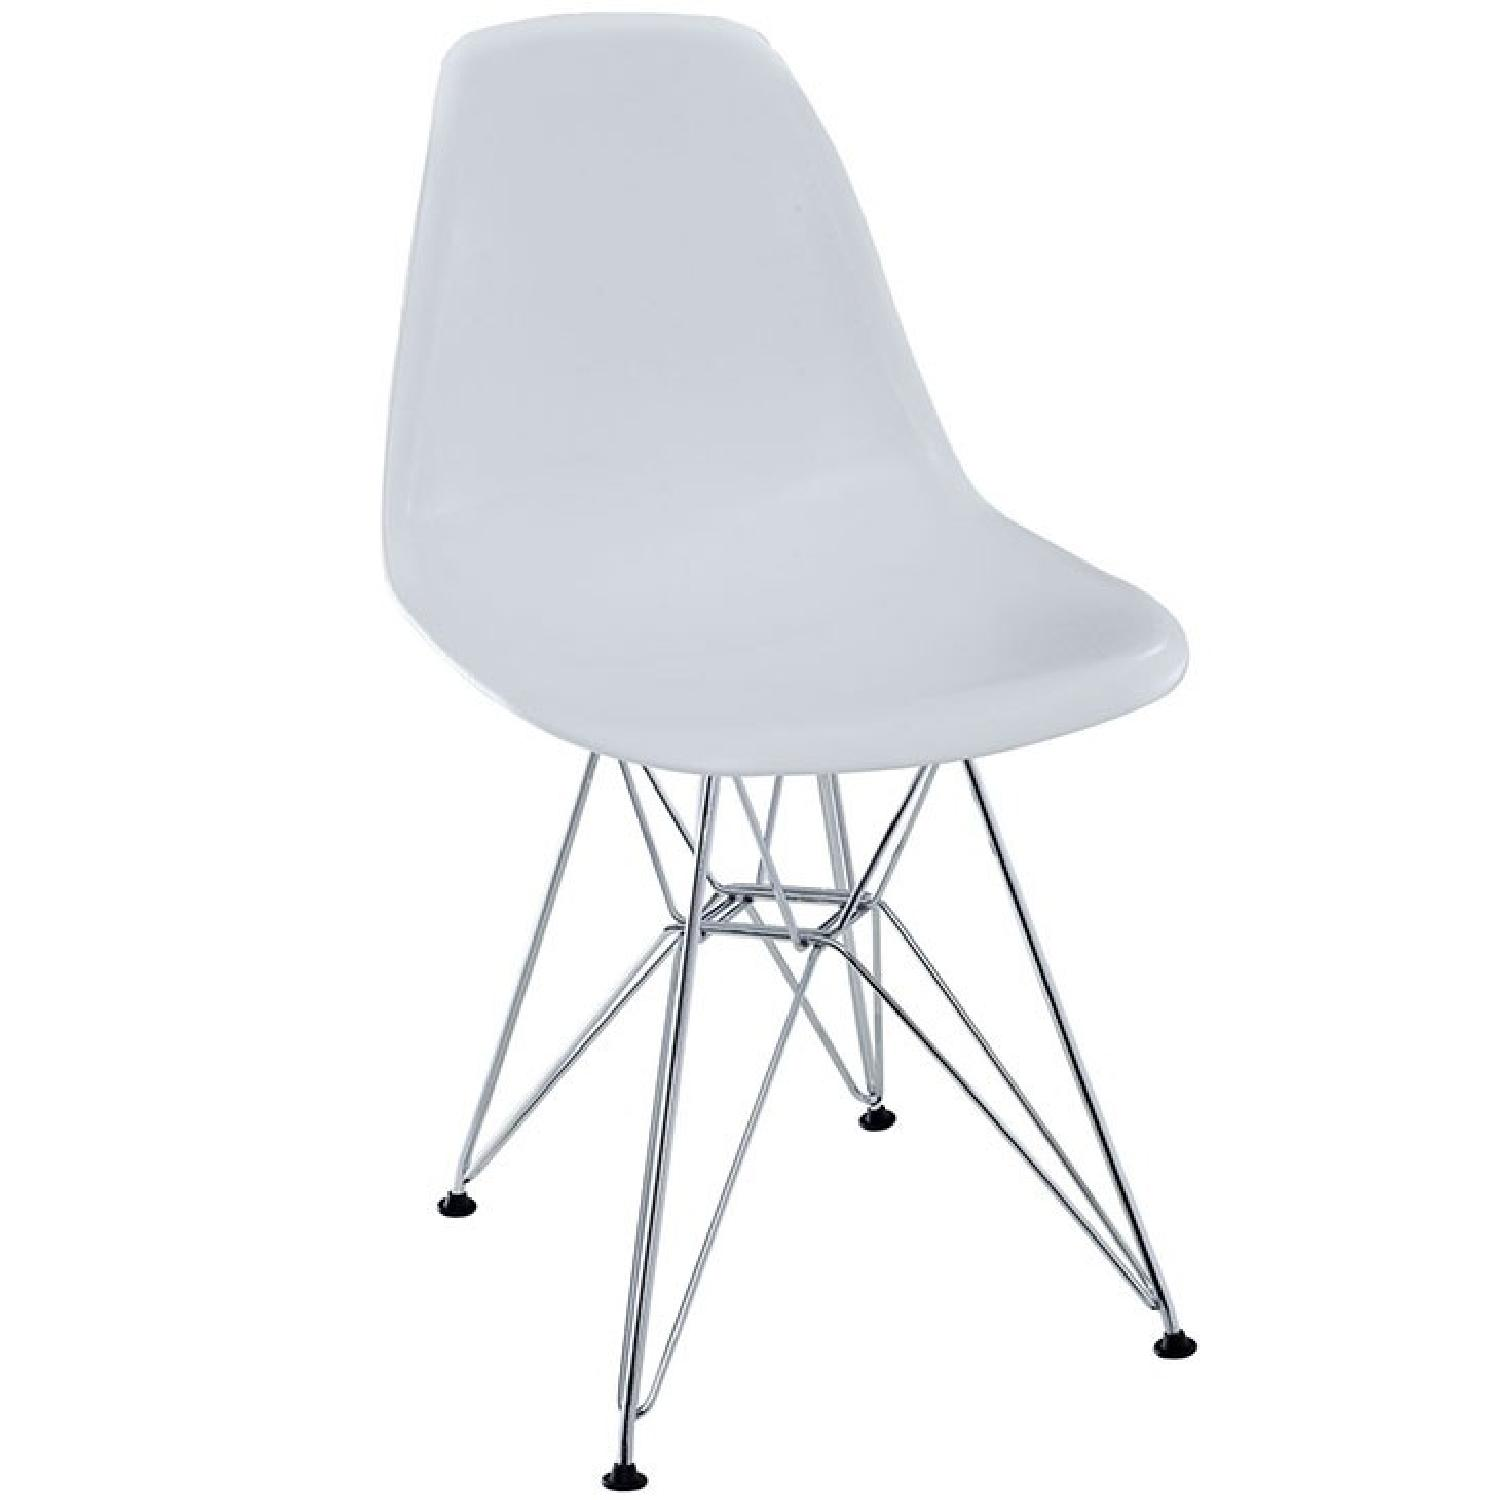 Lenny Dining Chair - image-0